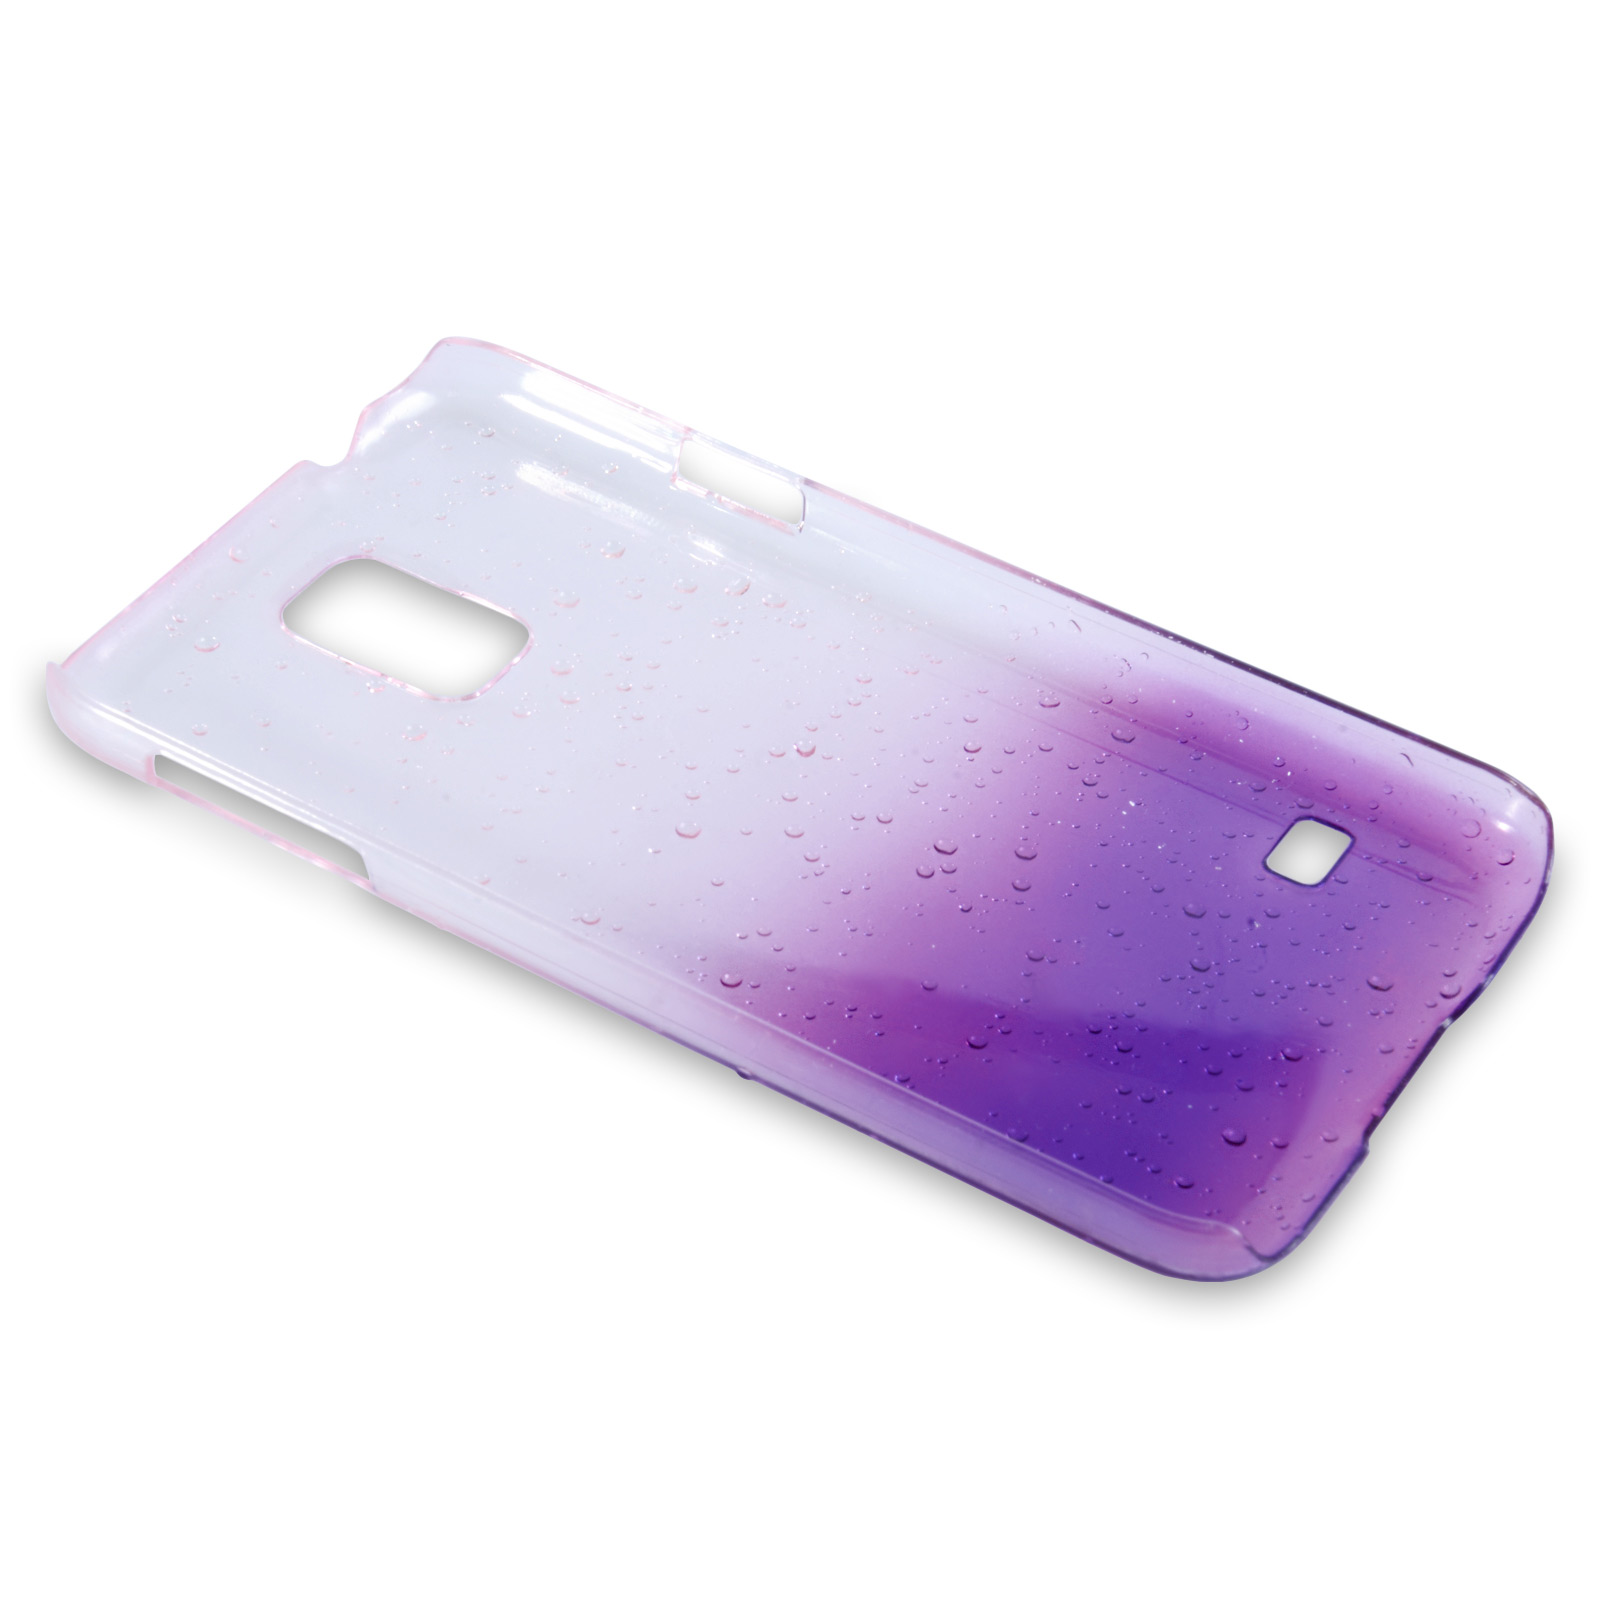 YouSave Samsung Galaxy S5 Raindrop Hard Case - Purple-Clear